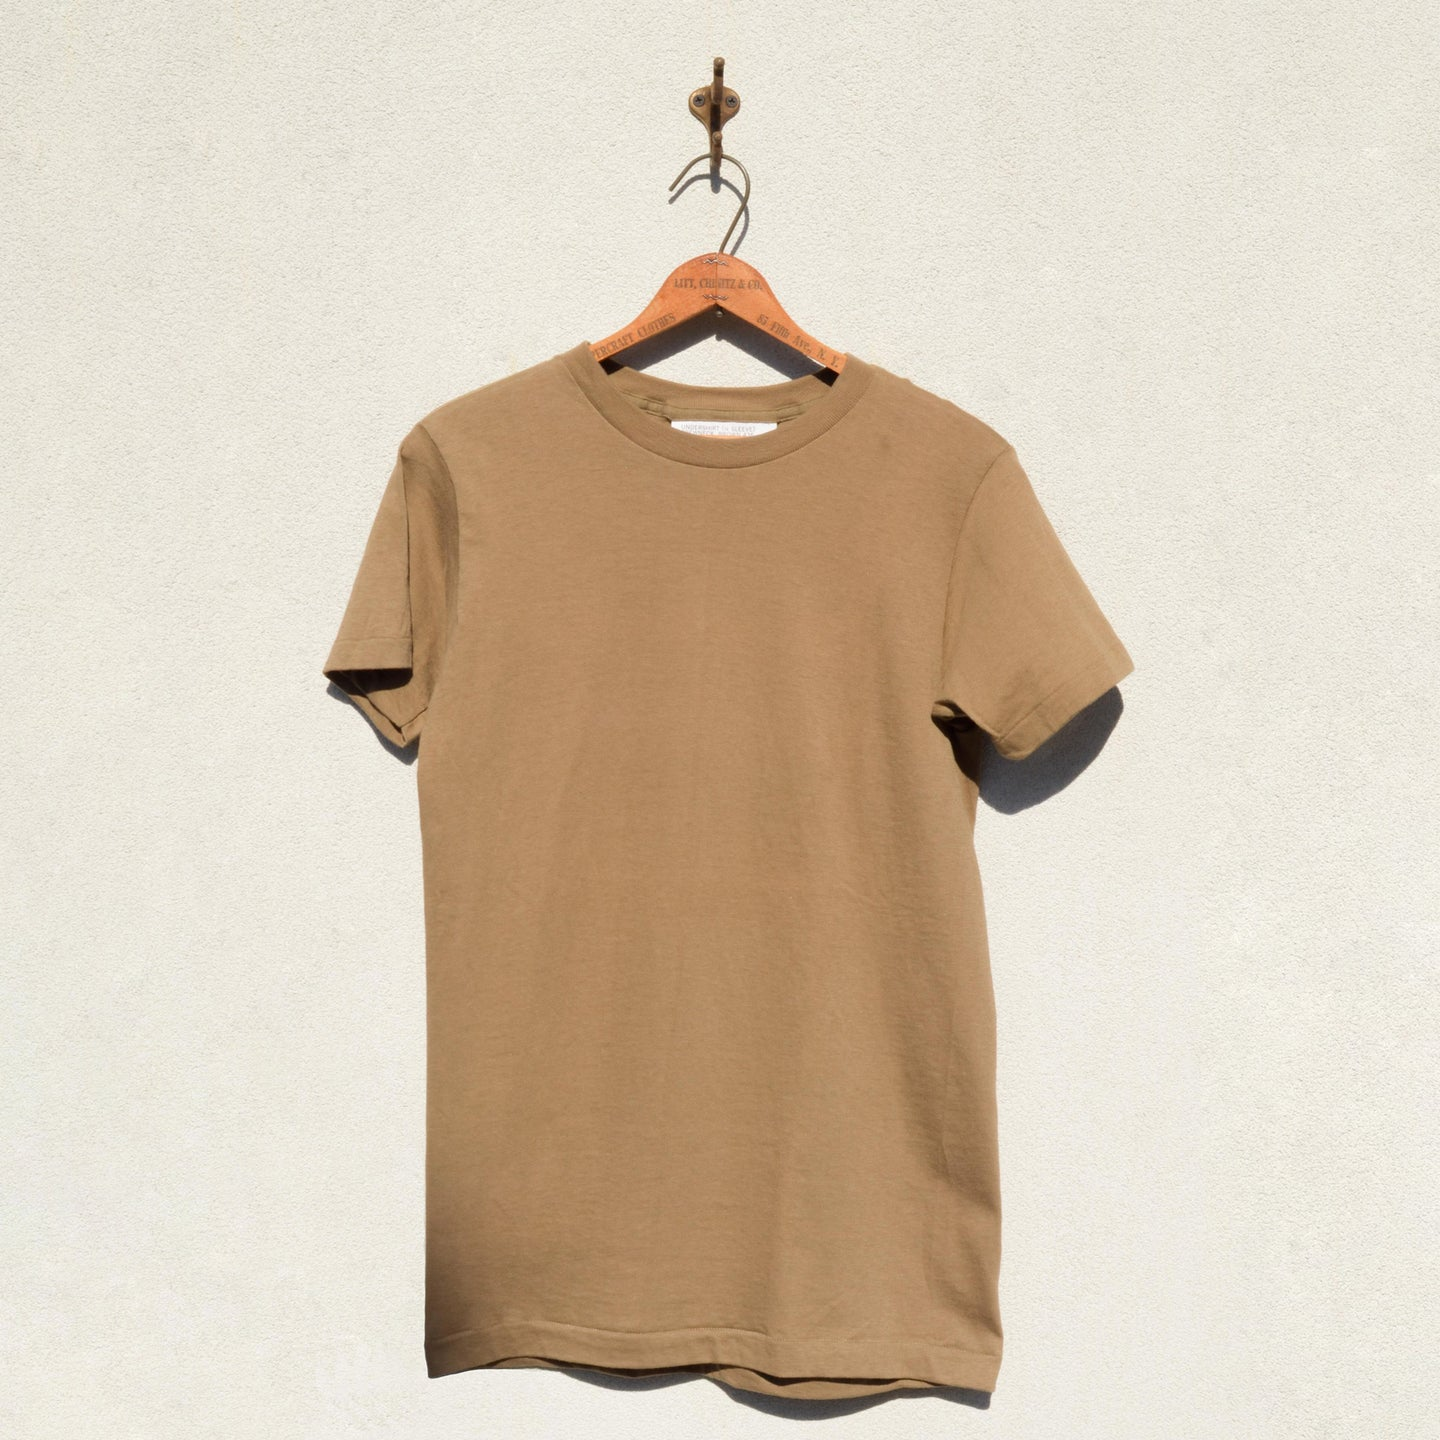 U.S. Military - All Cotton Undershirt